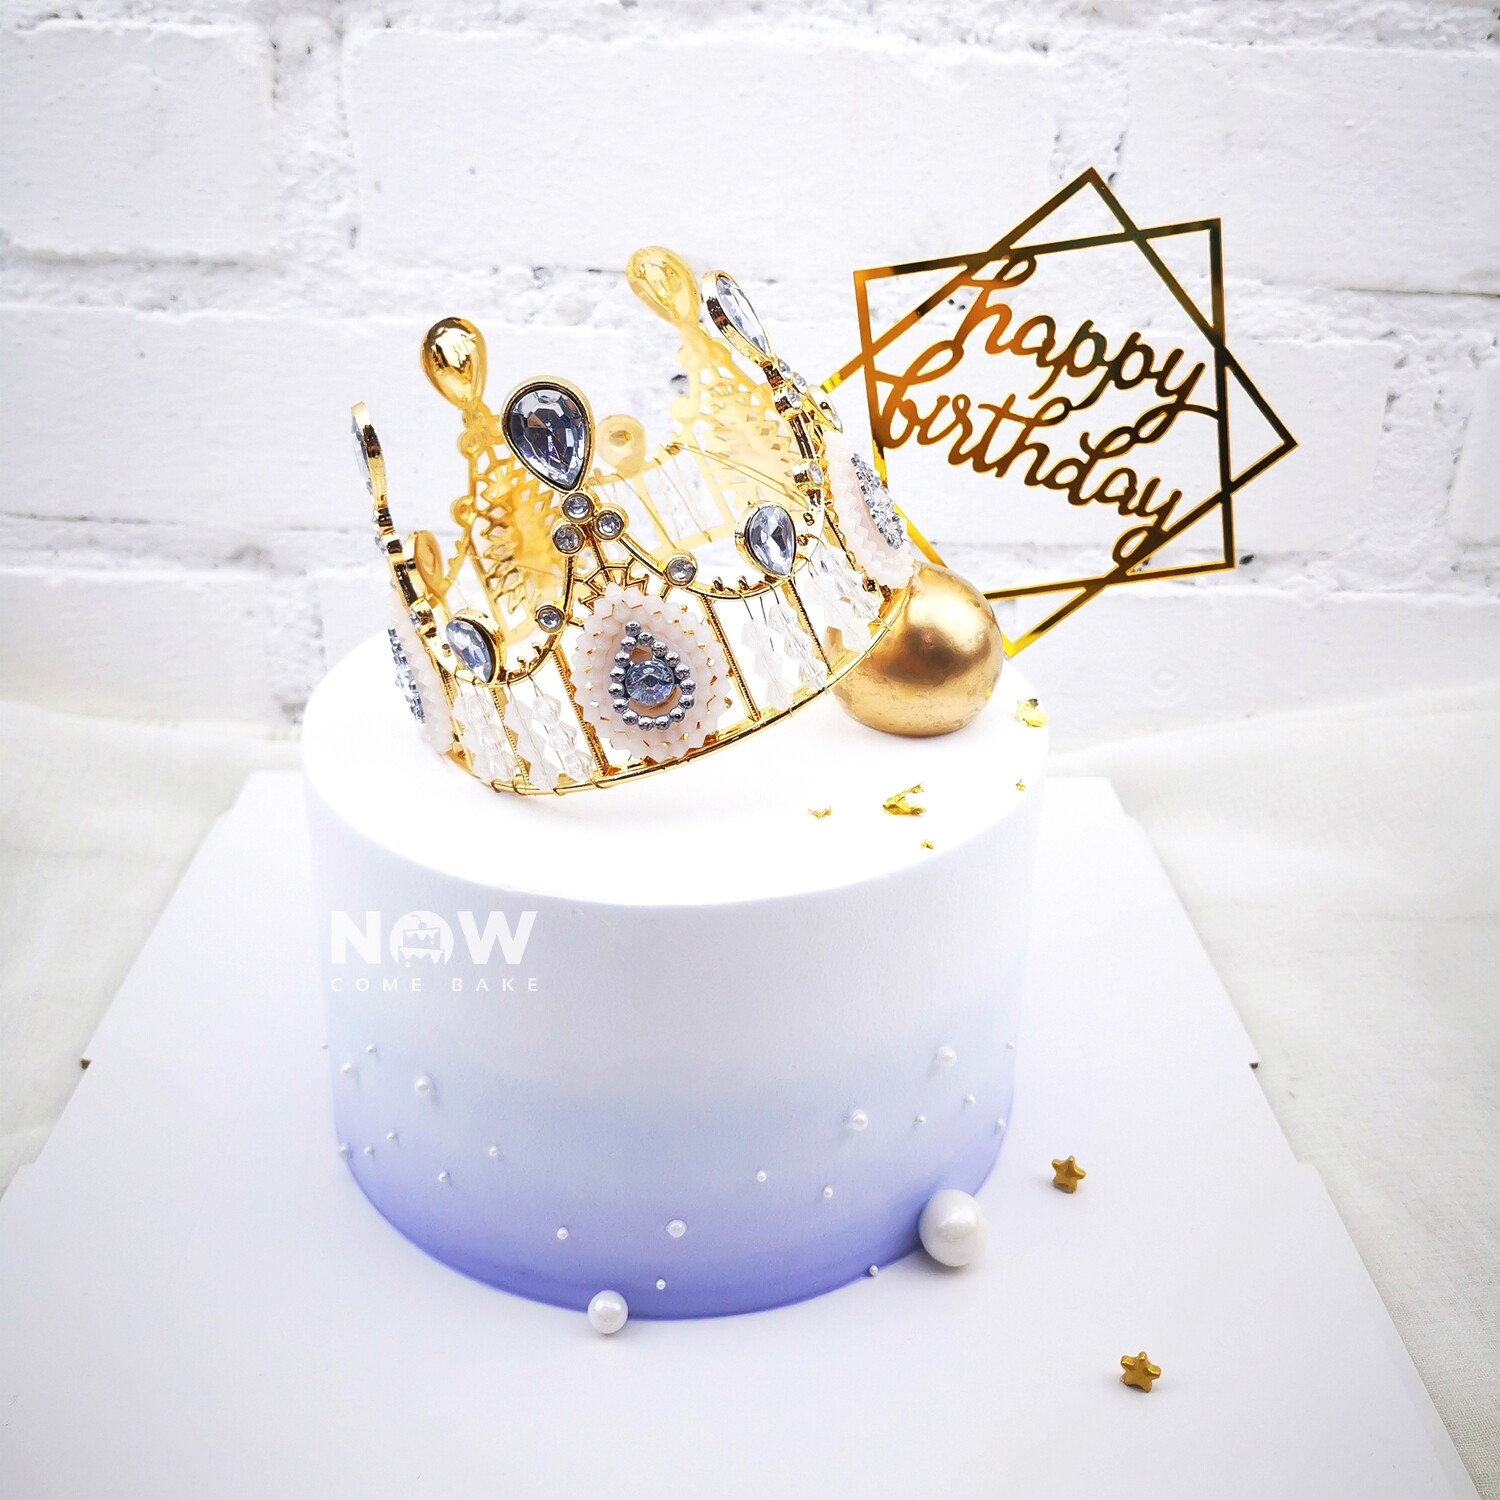 Your Crown (By: NOW Bakery from JB)